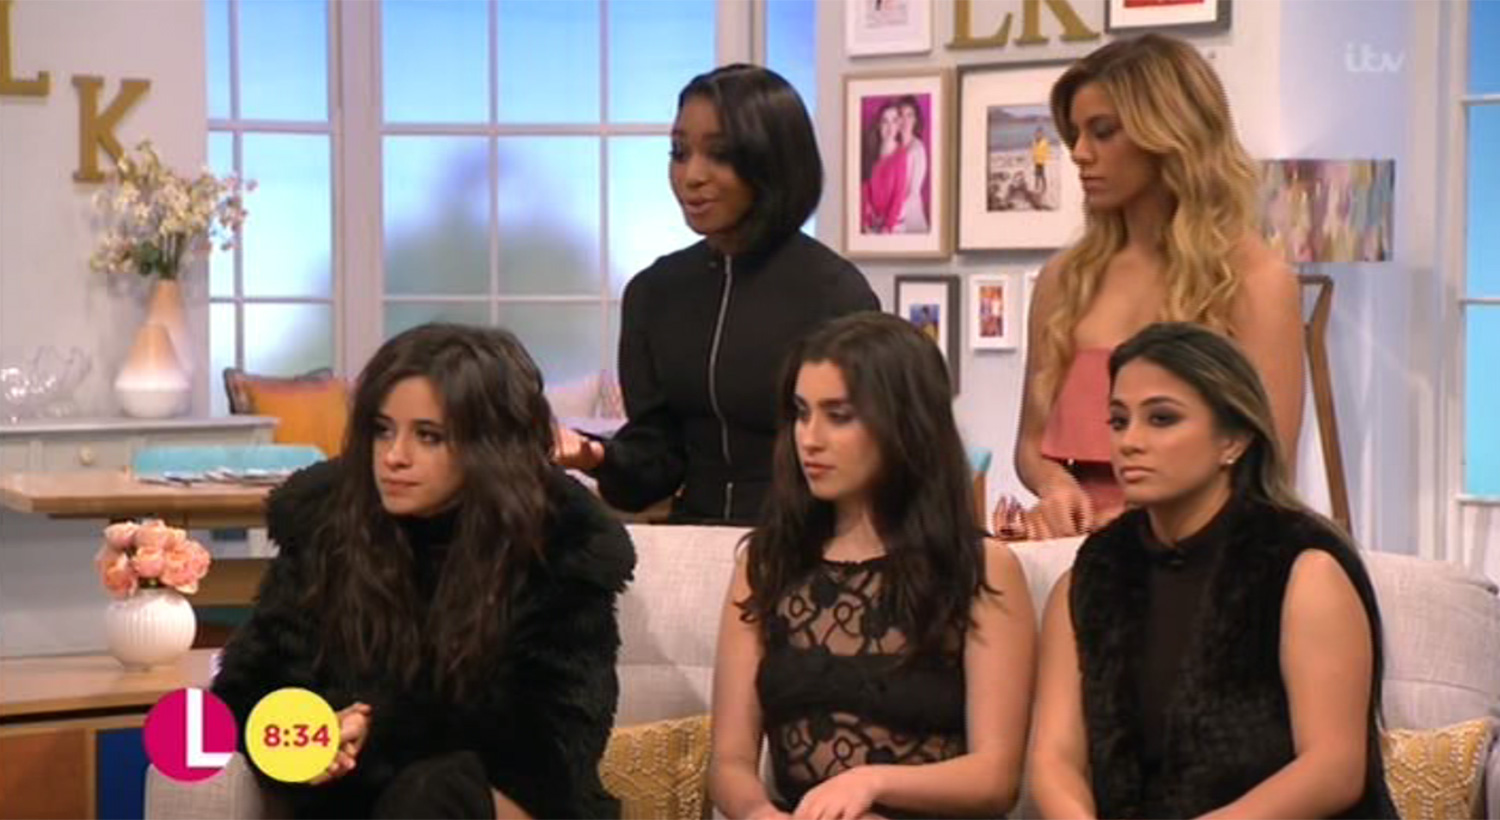 Fifth Harmony were interviewed by Amanda during her last day as host